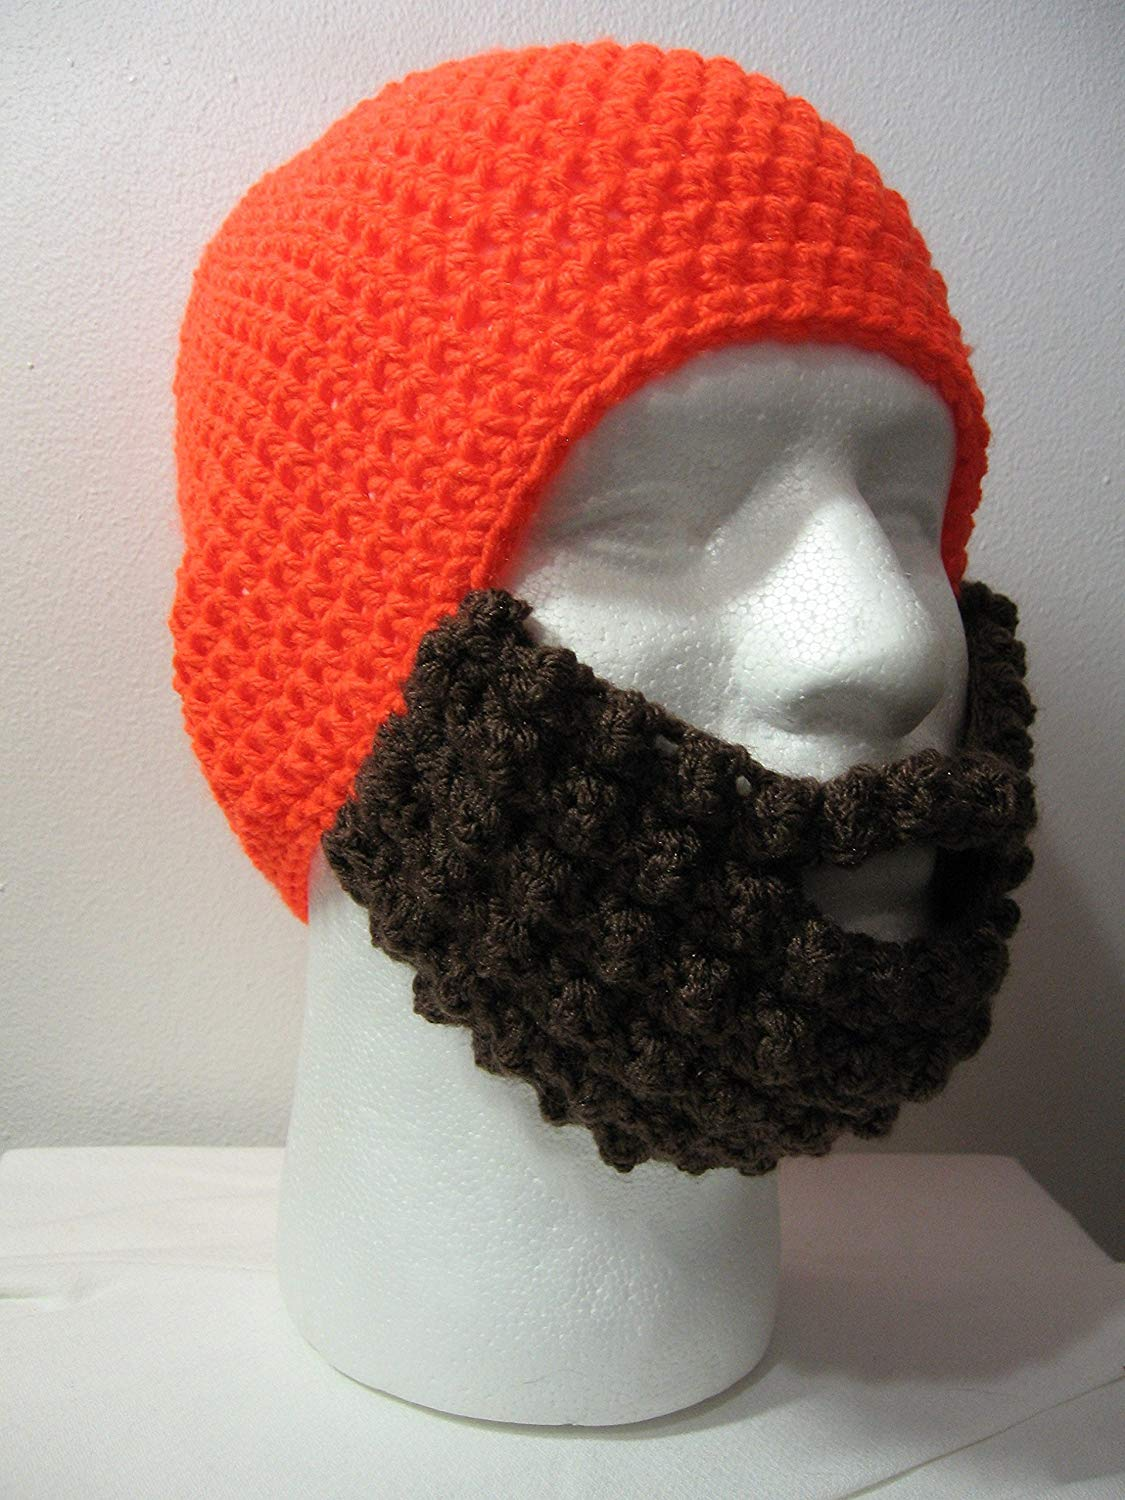 5b365a1e420 Get Quotations · Handmade Crochet Hat with Beard in Neon Orange